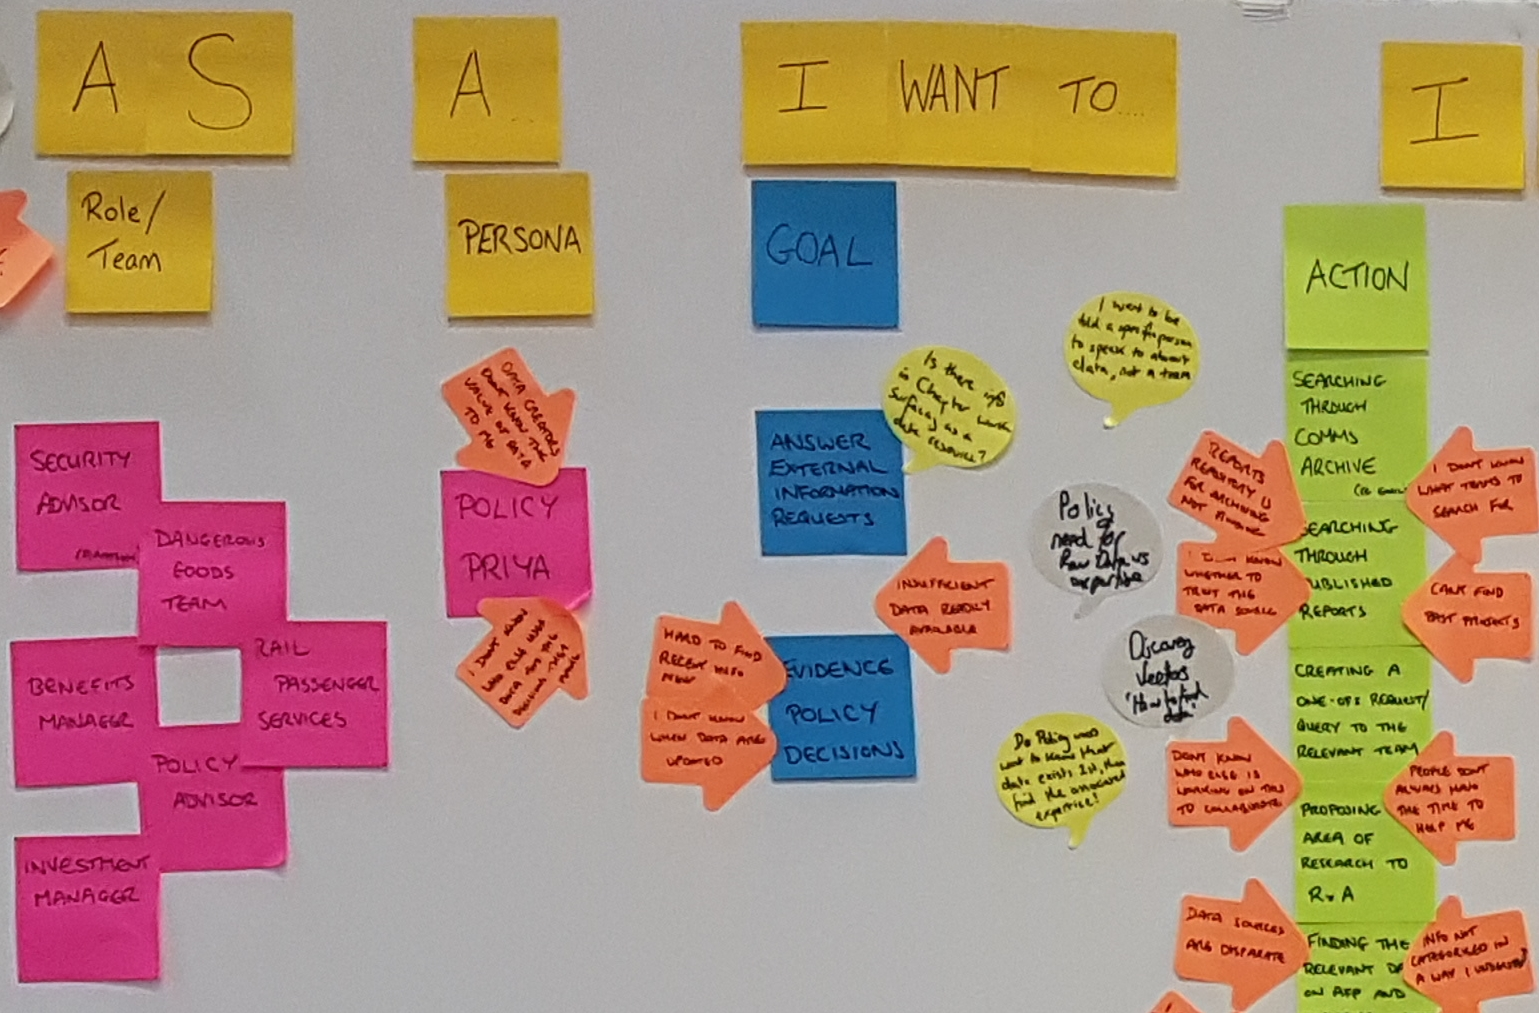 extract of kanban board with Post Its showing what users want to accomplish